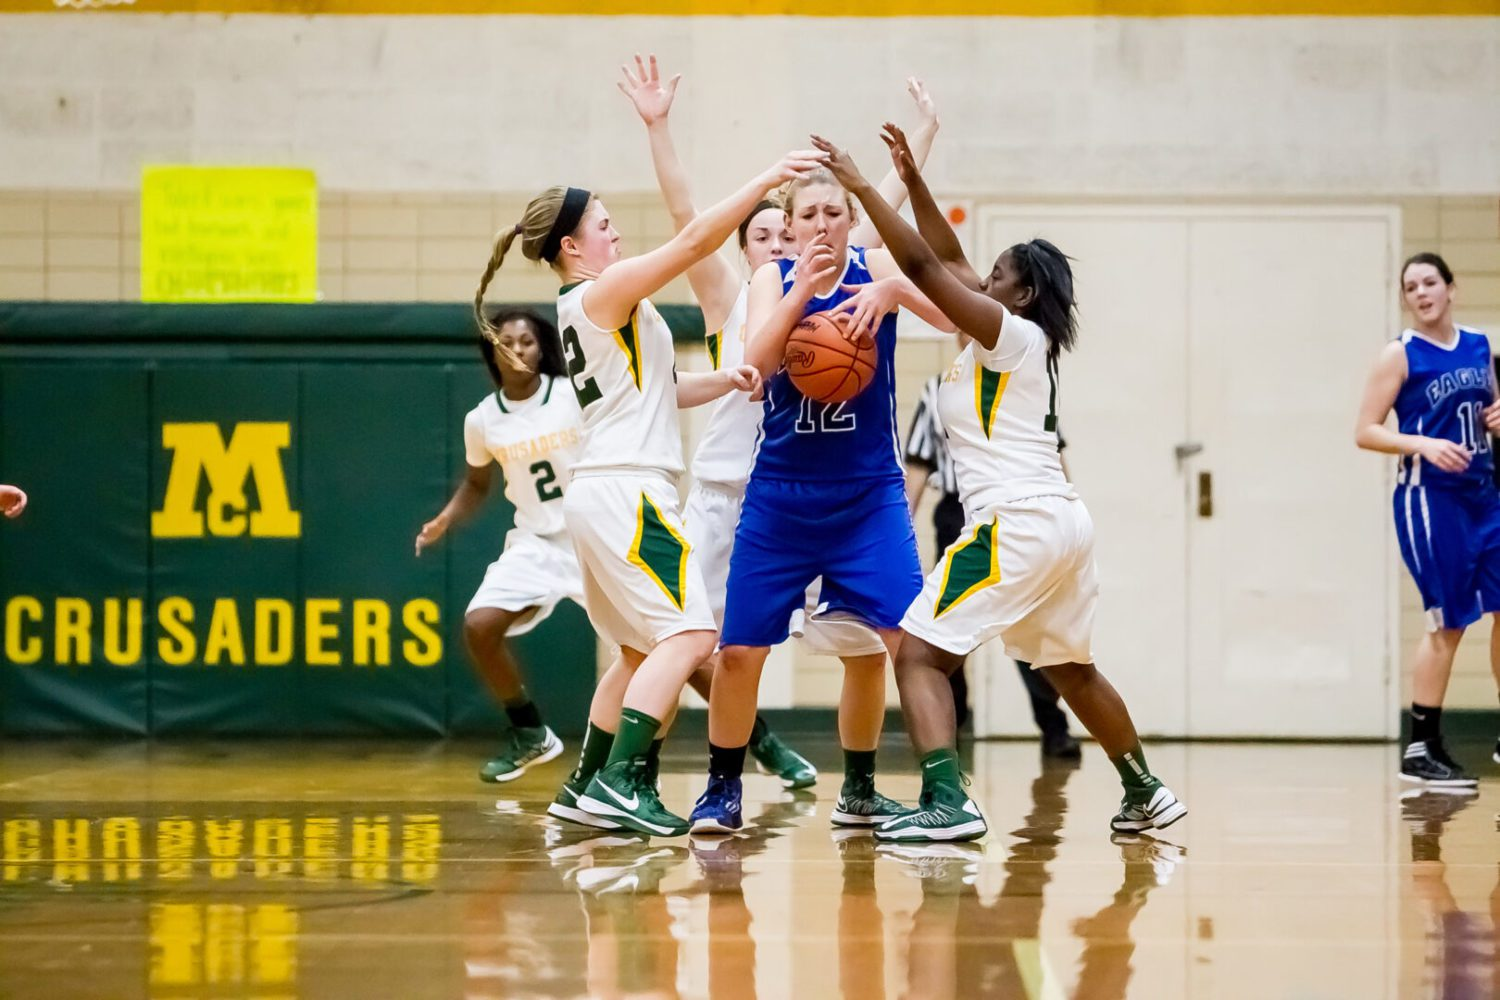 Muskegon Catholic Central girls too much for Fruitport Calvary Christian in Class D district showdown